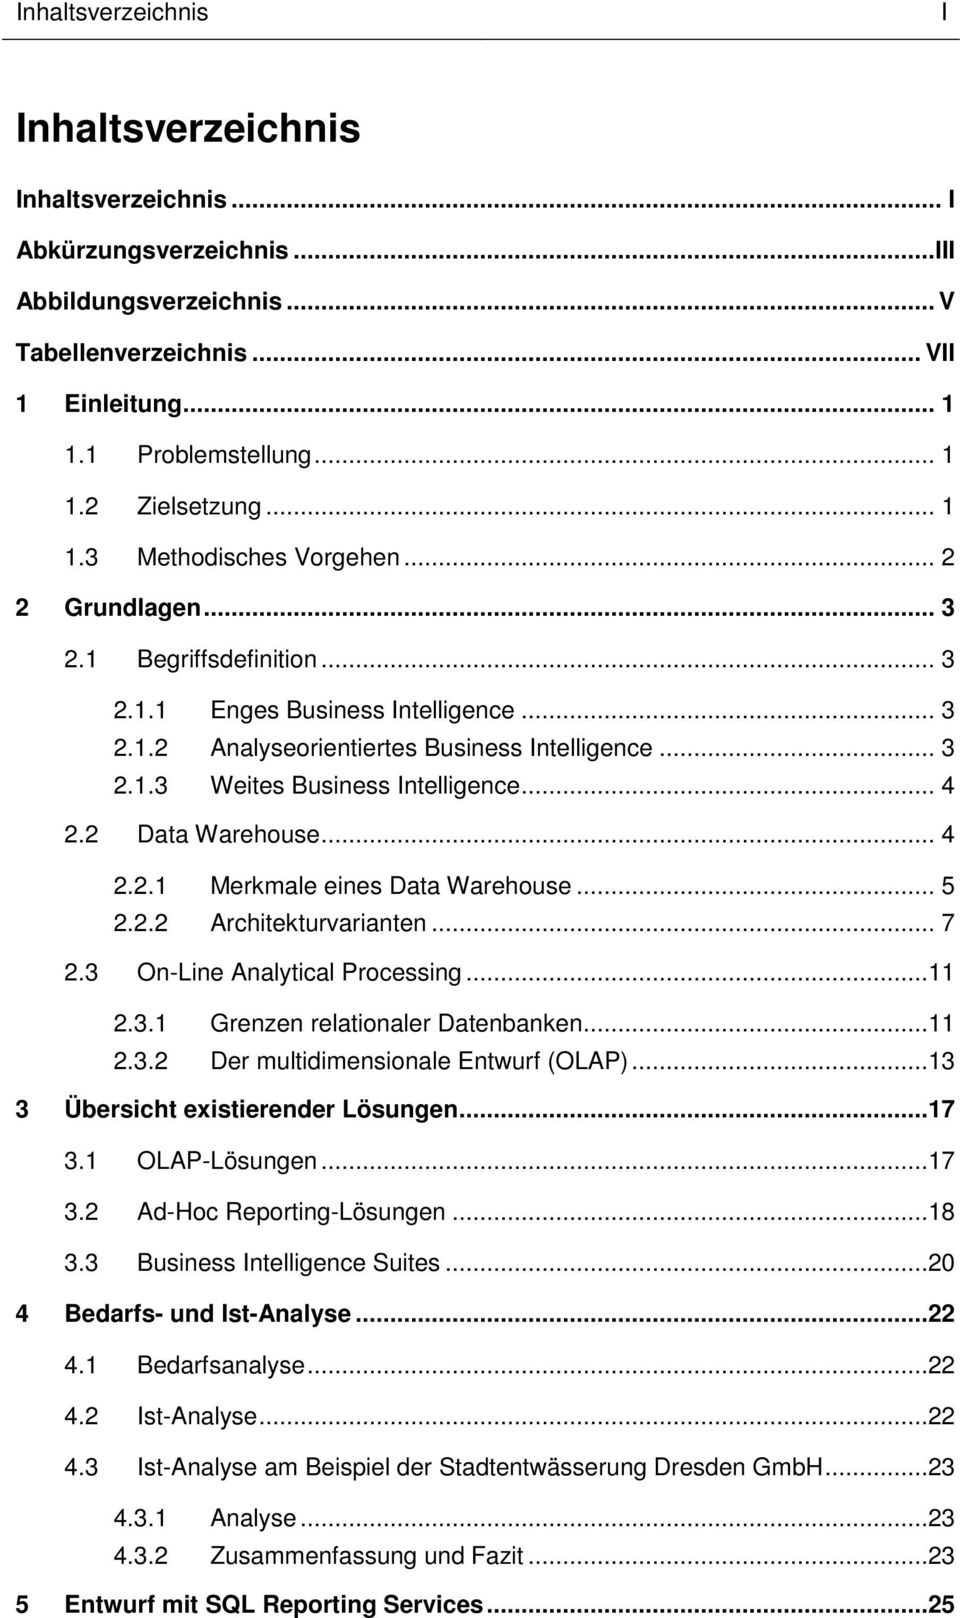 .. 4 2.2 Data Warehouse... 4 2.2.1 Merkmale eines Data Warehouse... 5 2.2.2 Architekturvarianten... 7 2.3 On-Line Analytical Processing...11 2.3.1 Grenzen relationaler Datenbanken...11 2.3.2 Der multidimensionale Entwurf (OLAP).